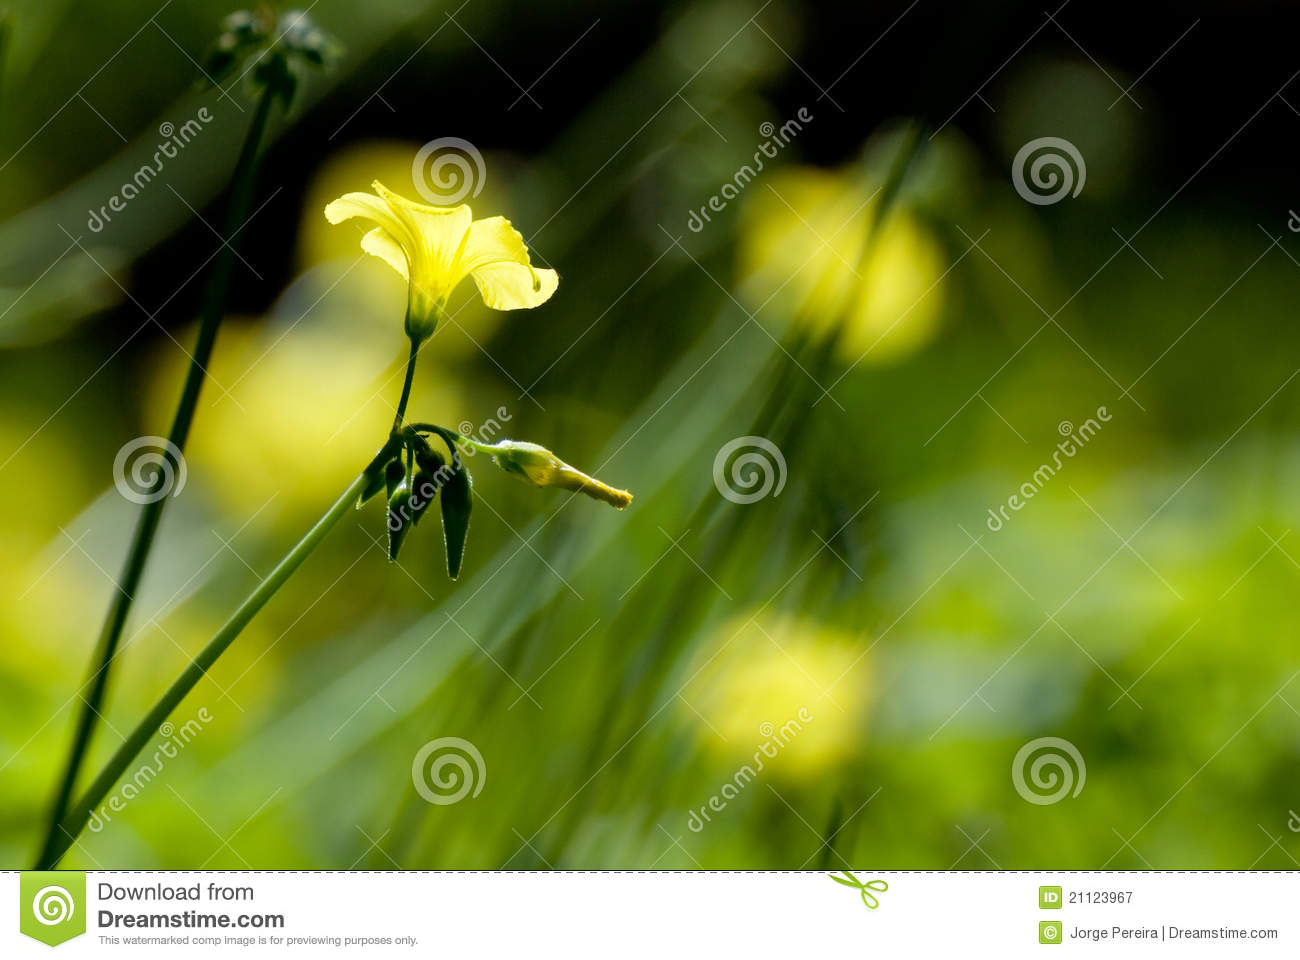 Simplicity In Nature Royalty Free Stock Photography ...